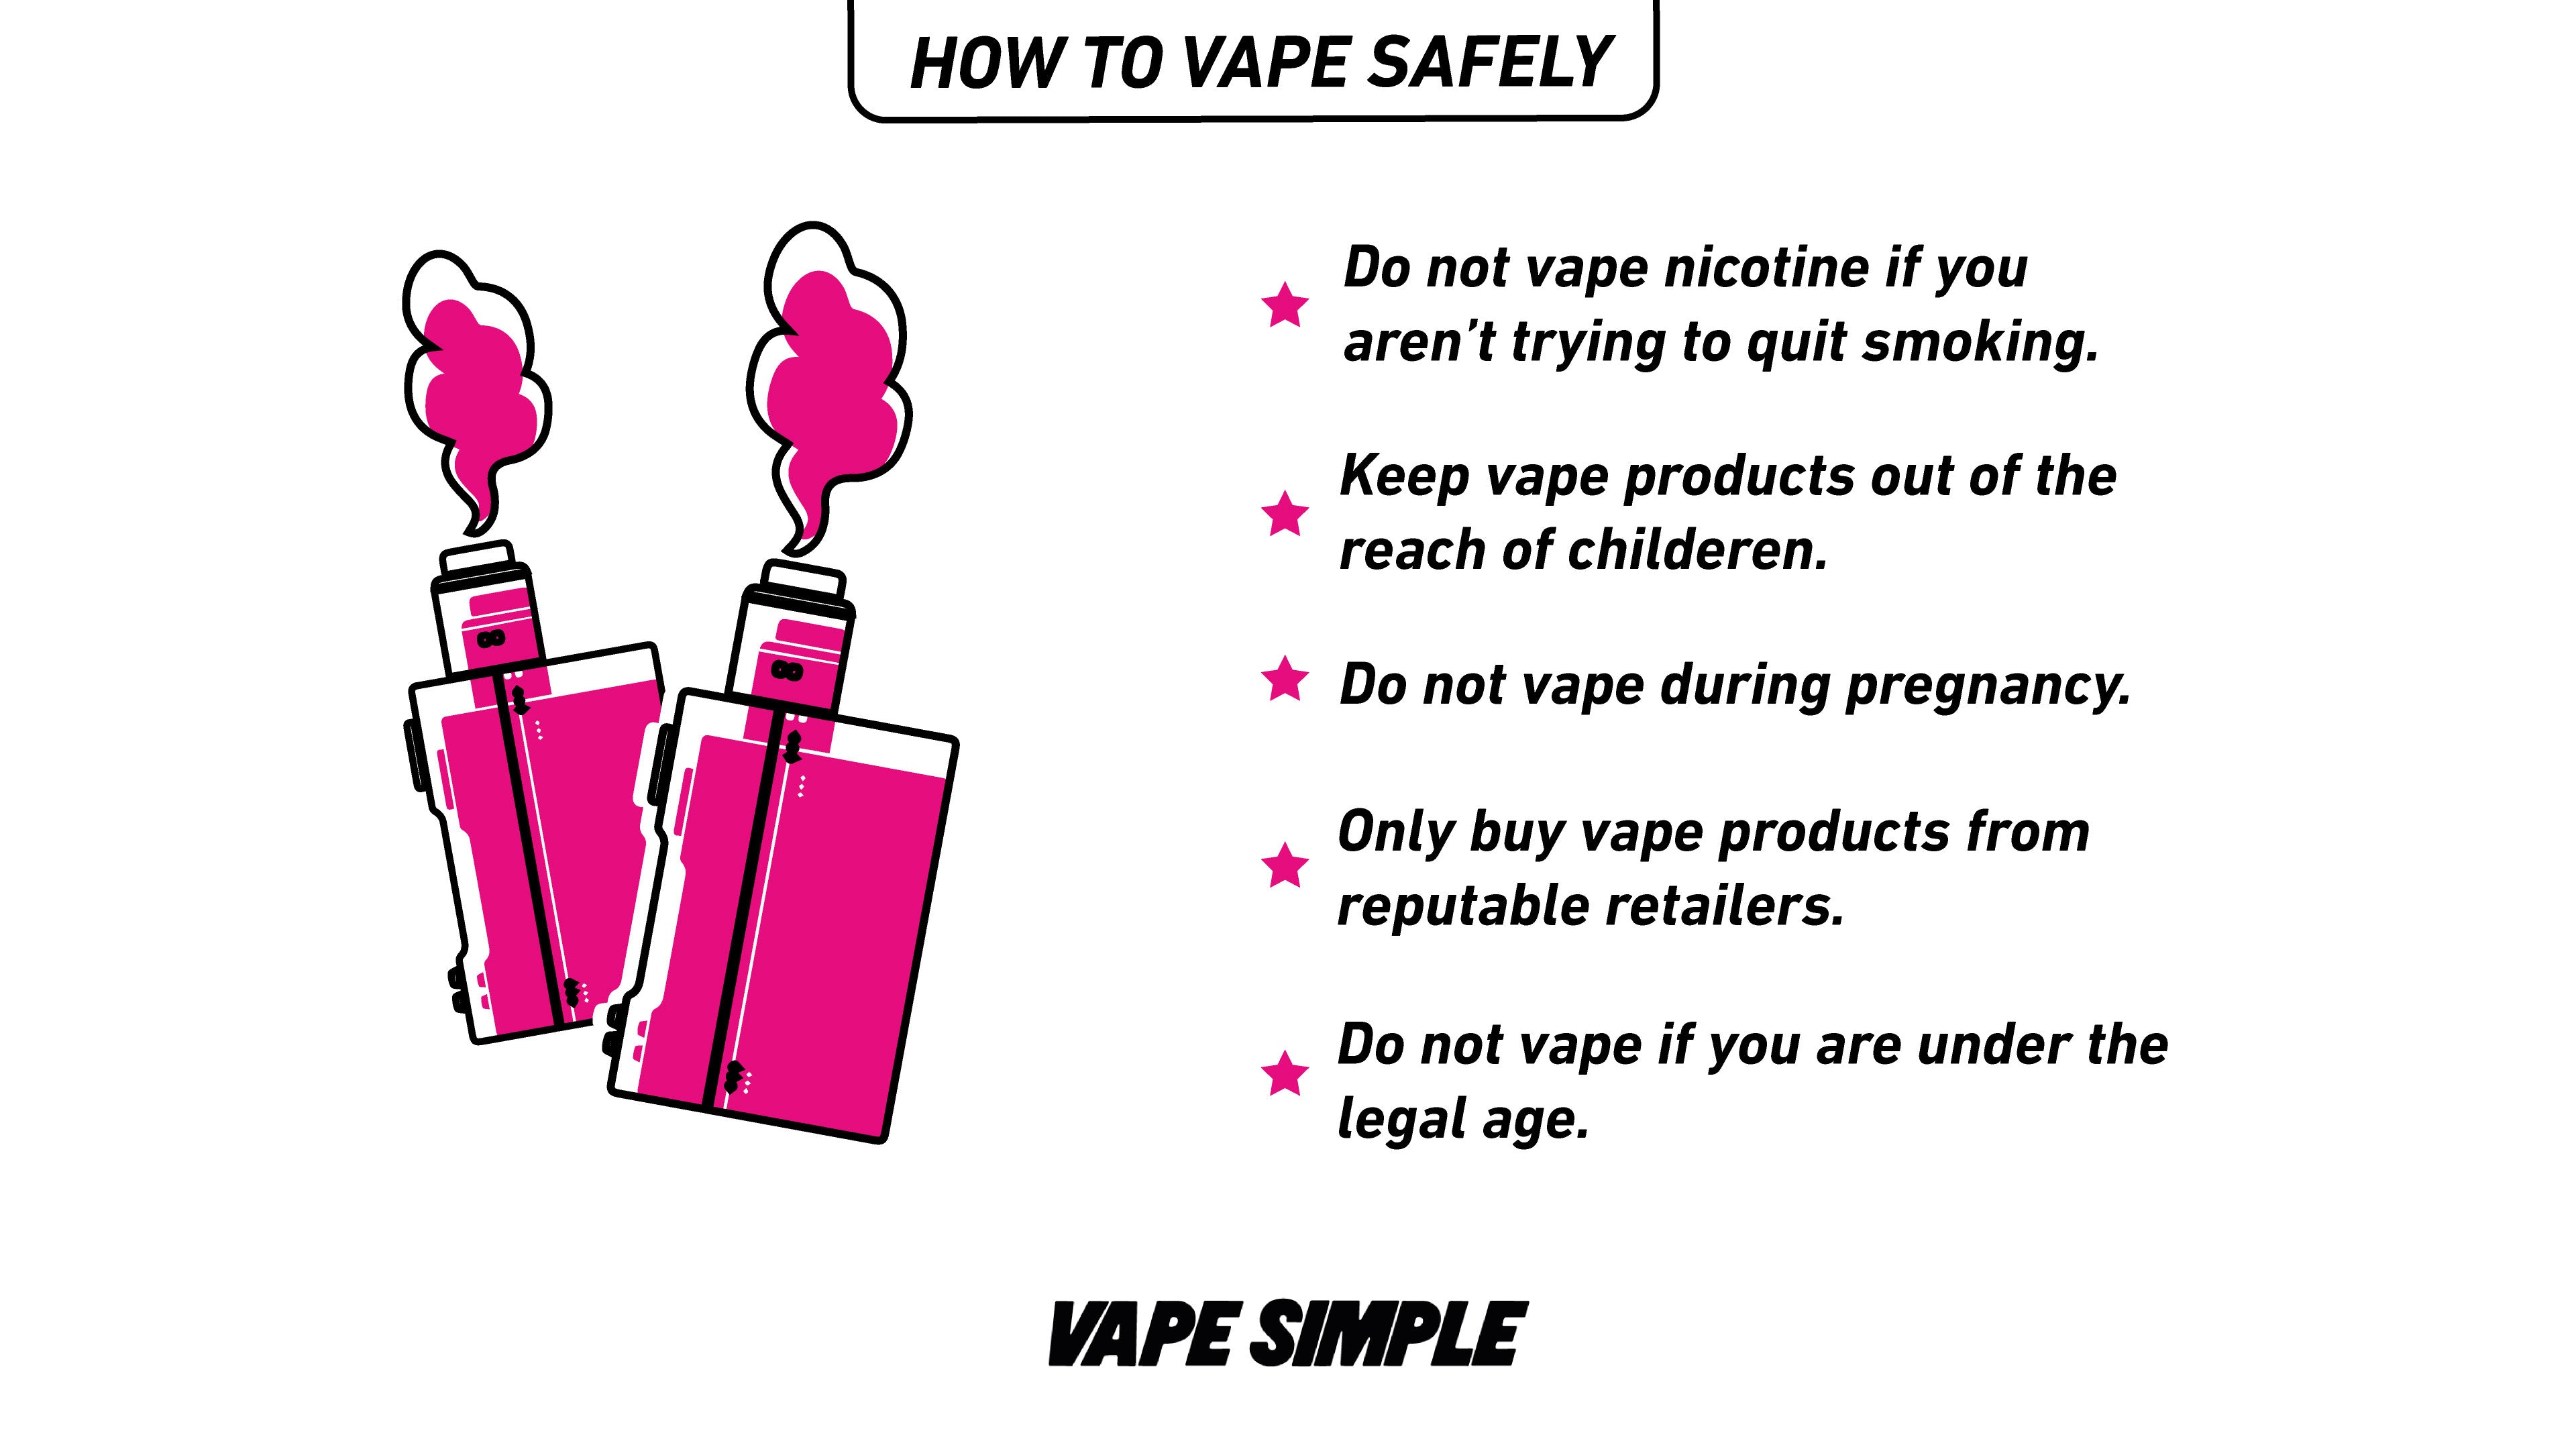 vape safety